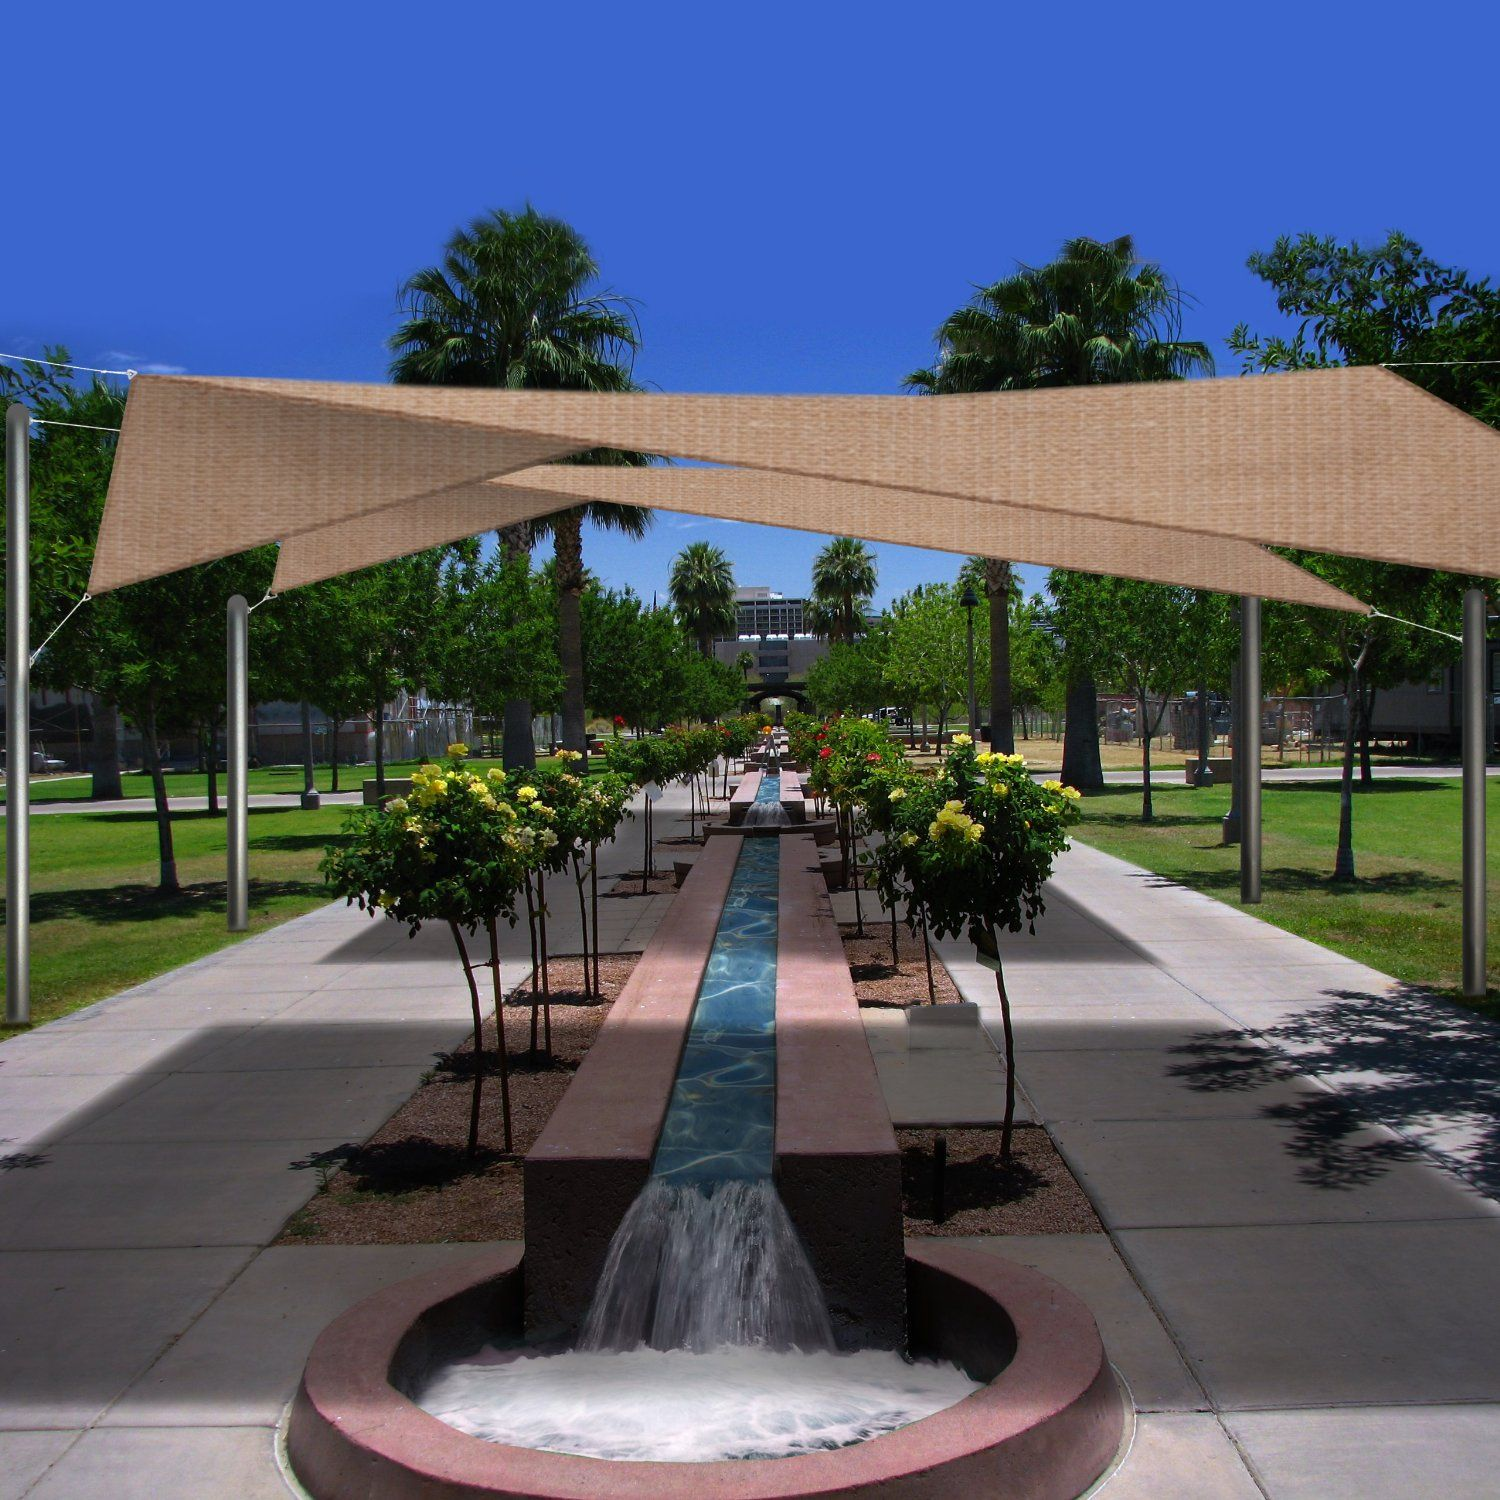 $137 22 click for updated price and info Square Sun Shade